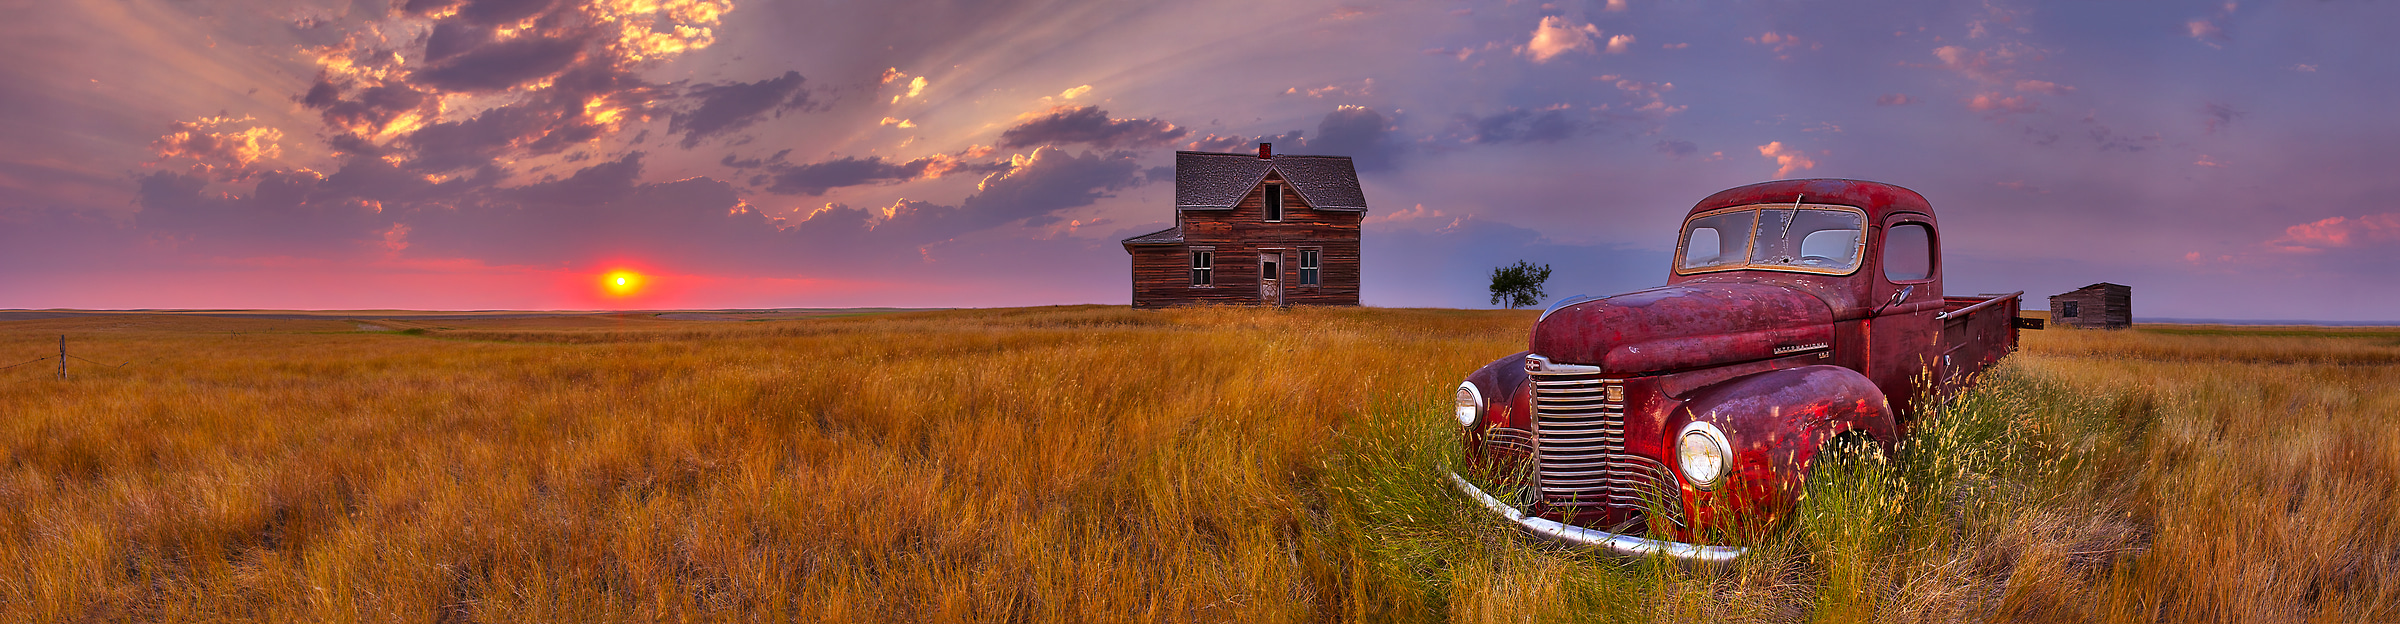 105 megapixels! A very high resolution, large-format VAST photo of farmland, the prairie, an old truck, and an abandoned house; fine art landscape photo created at sunset by Scott Dimond on the Great Plains in Saskatchewan, Canada